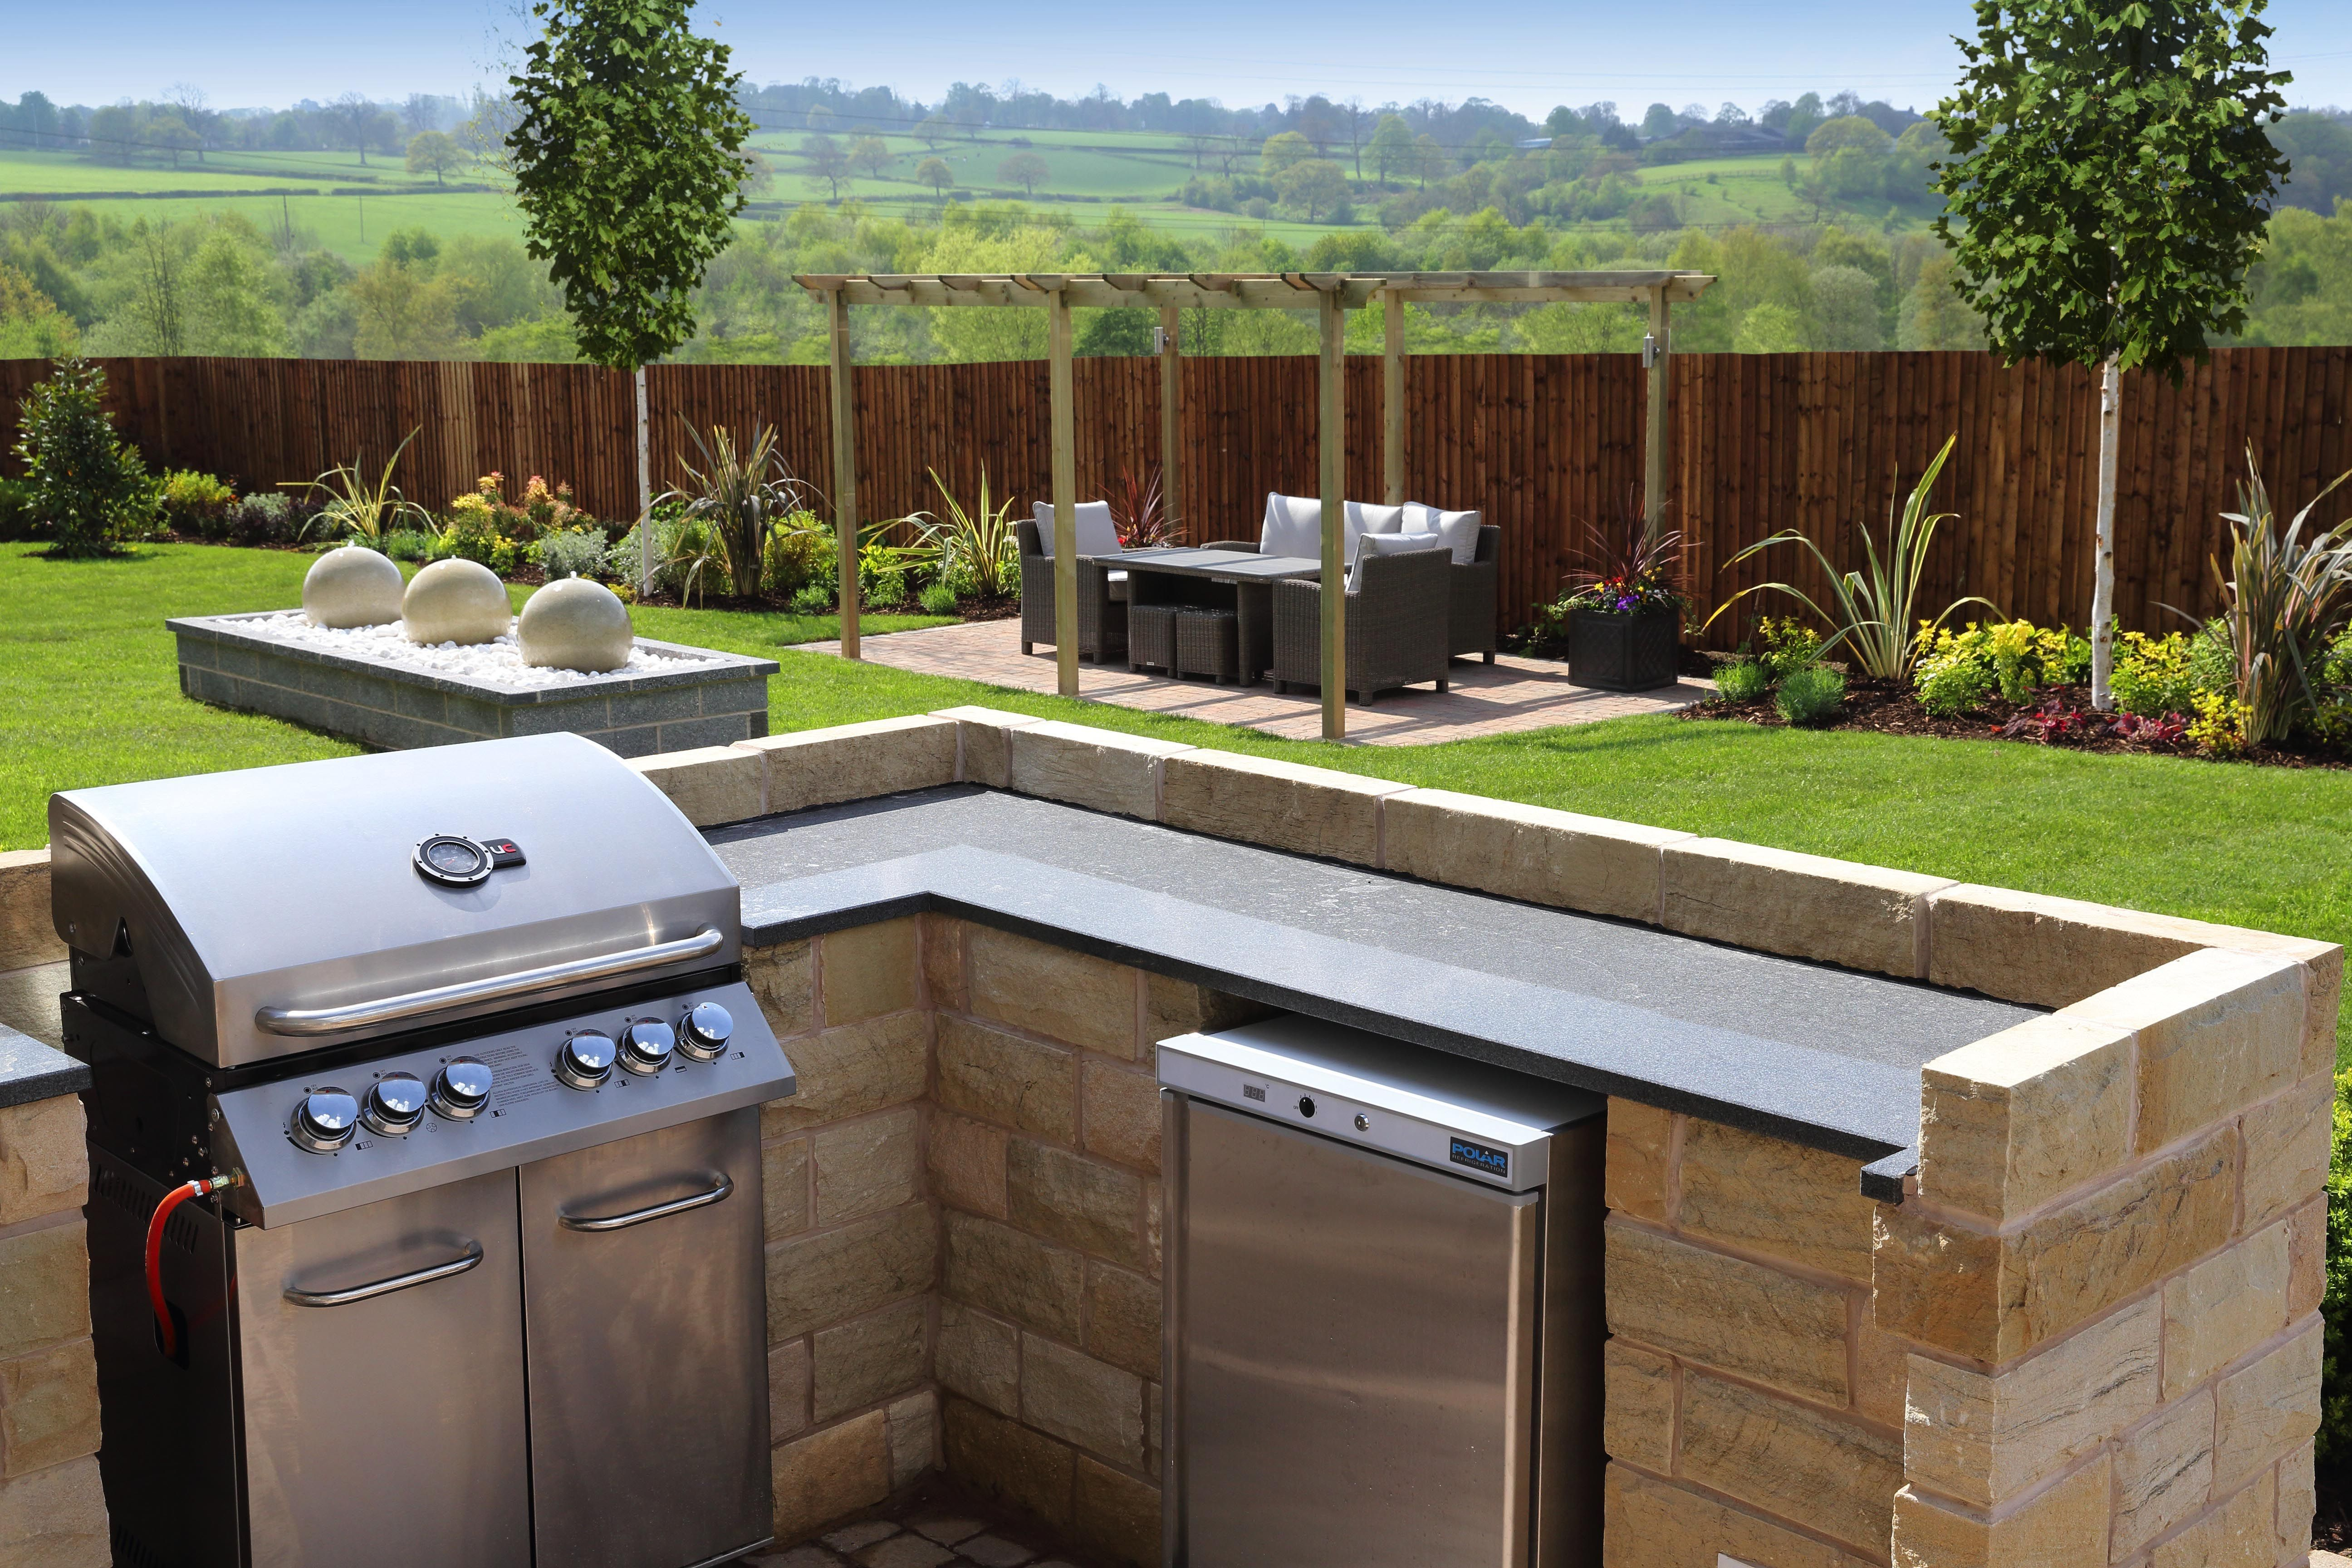 Best Amazing Outdoor Kitchen Ideas Design For Small Space On A Budget Simple Outdoor Kitchen Outdoor Kitchen Diy Outdoor Kitchen